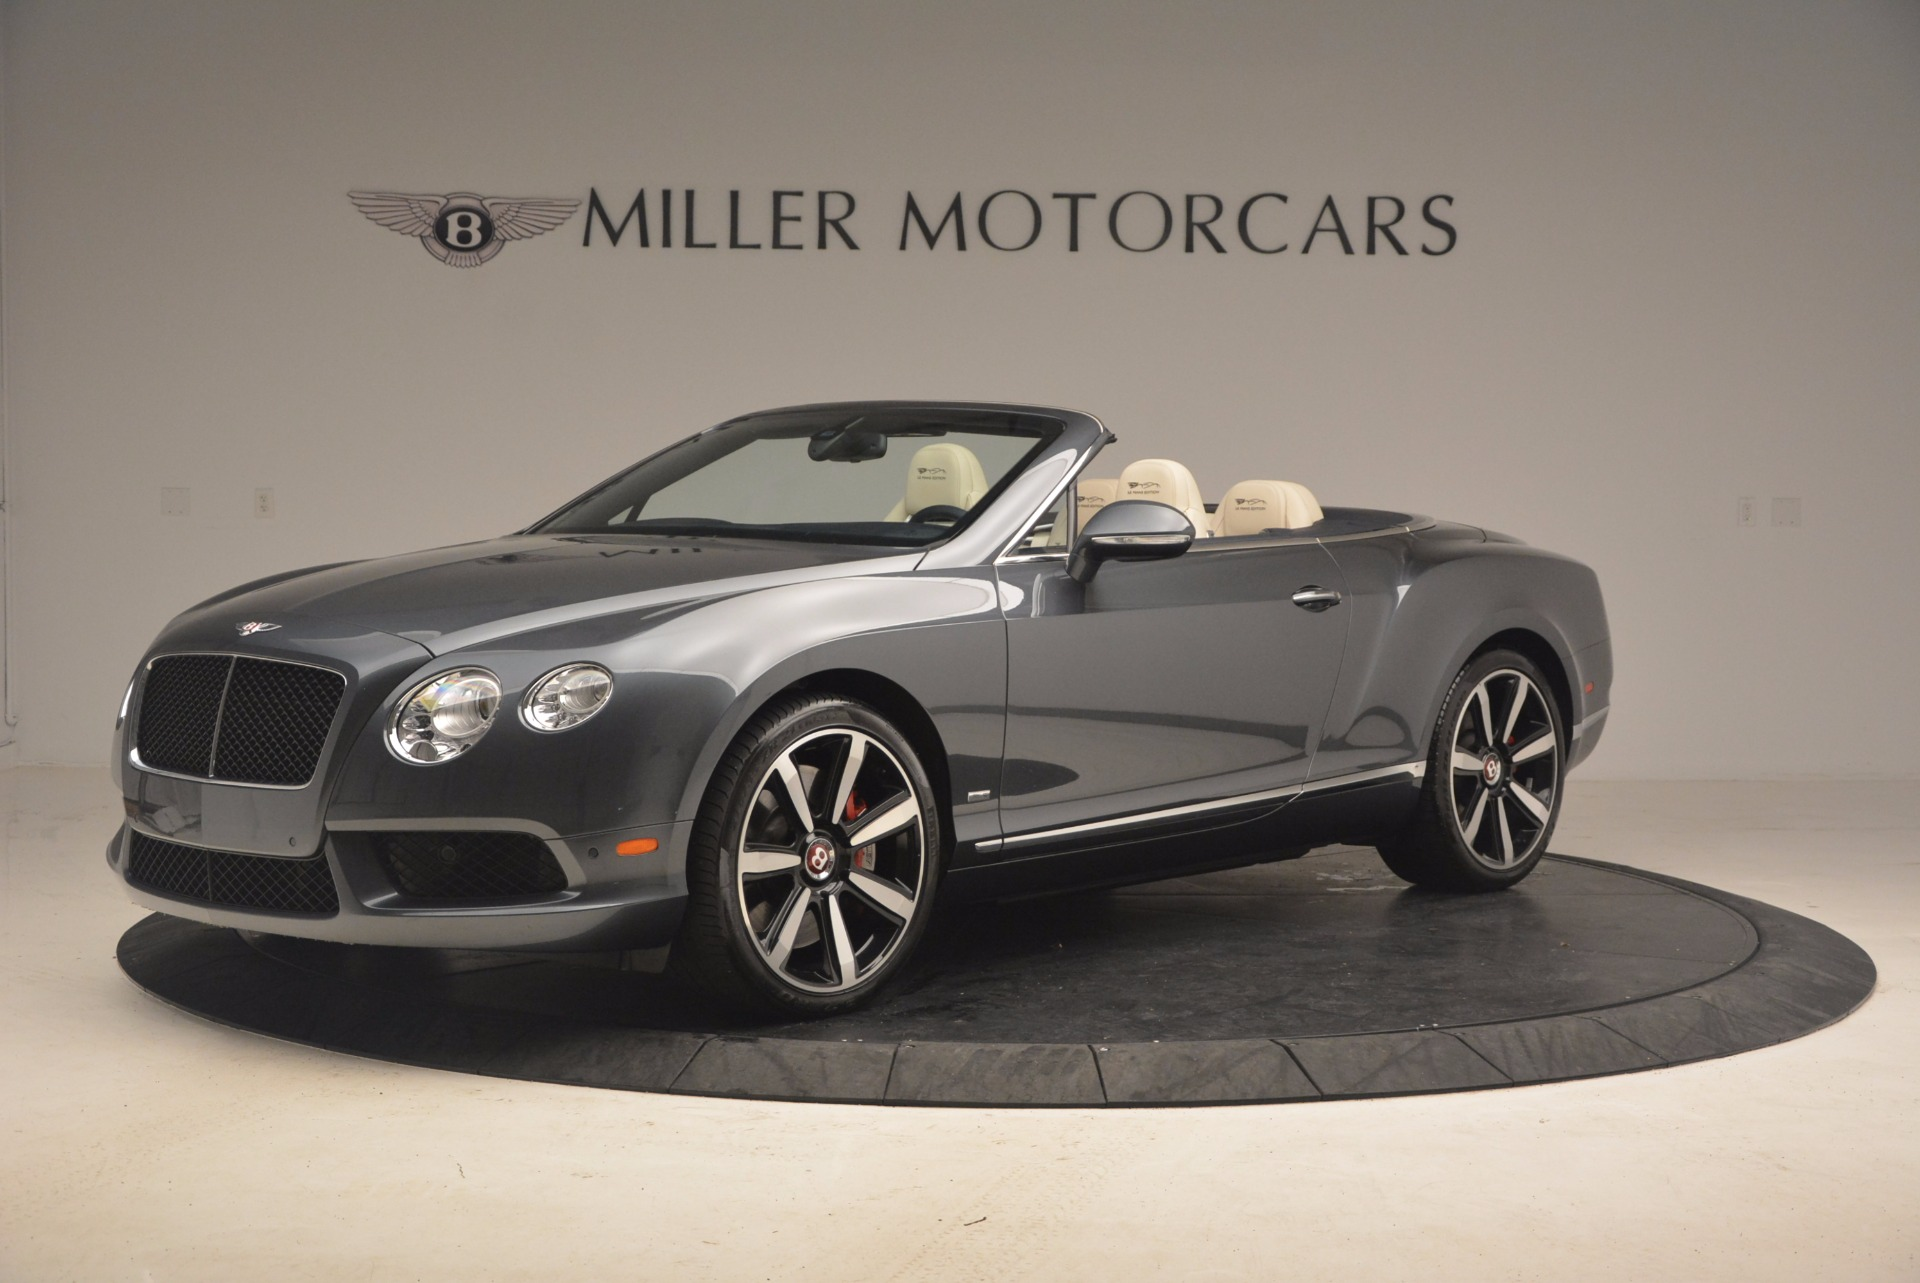 Used 2013 Bentley Continental GT V8 Le Mans Edition, 1 of 48 For Sale In Greenwich, CT. Alfa Romeo of Greenwich, 7226 1288_p2